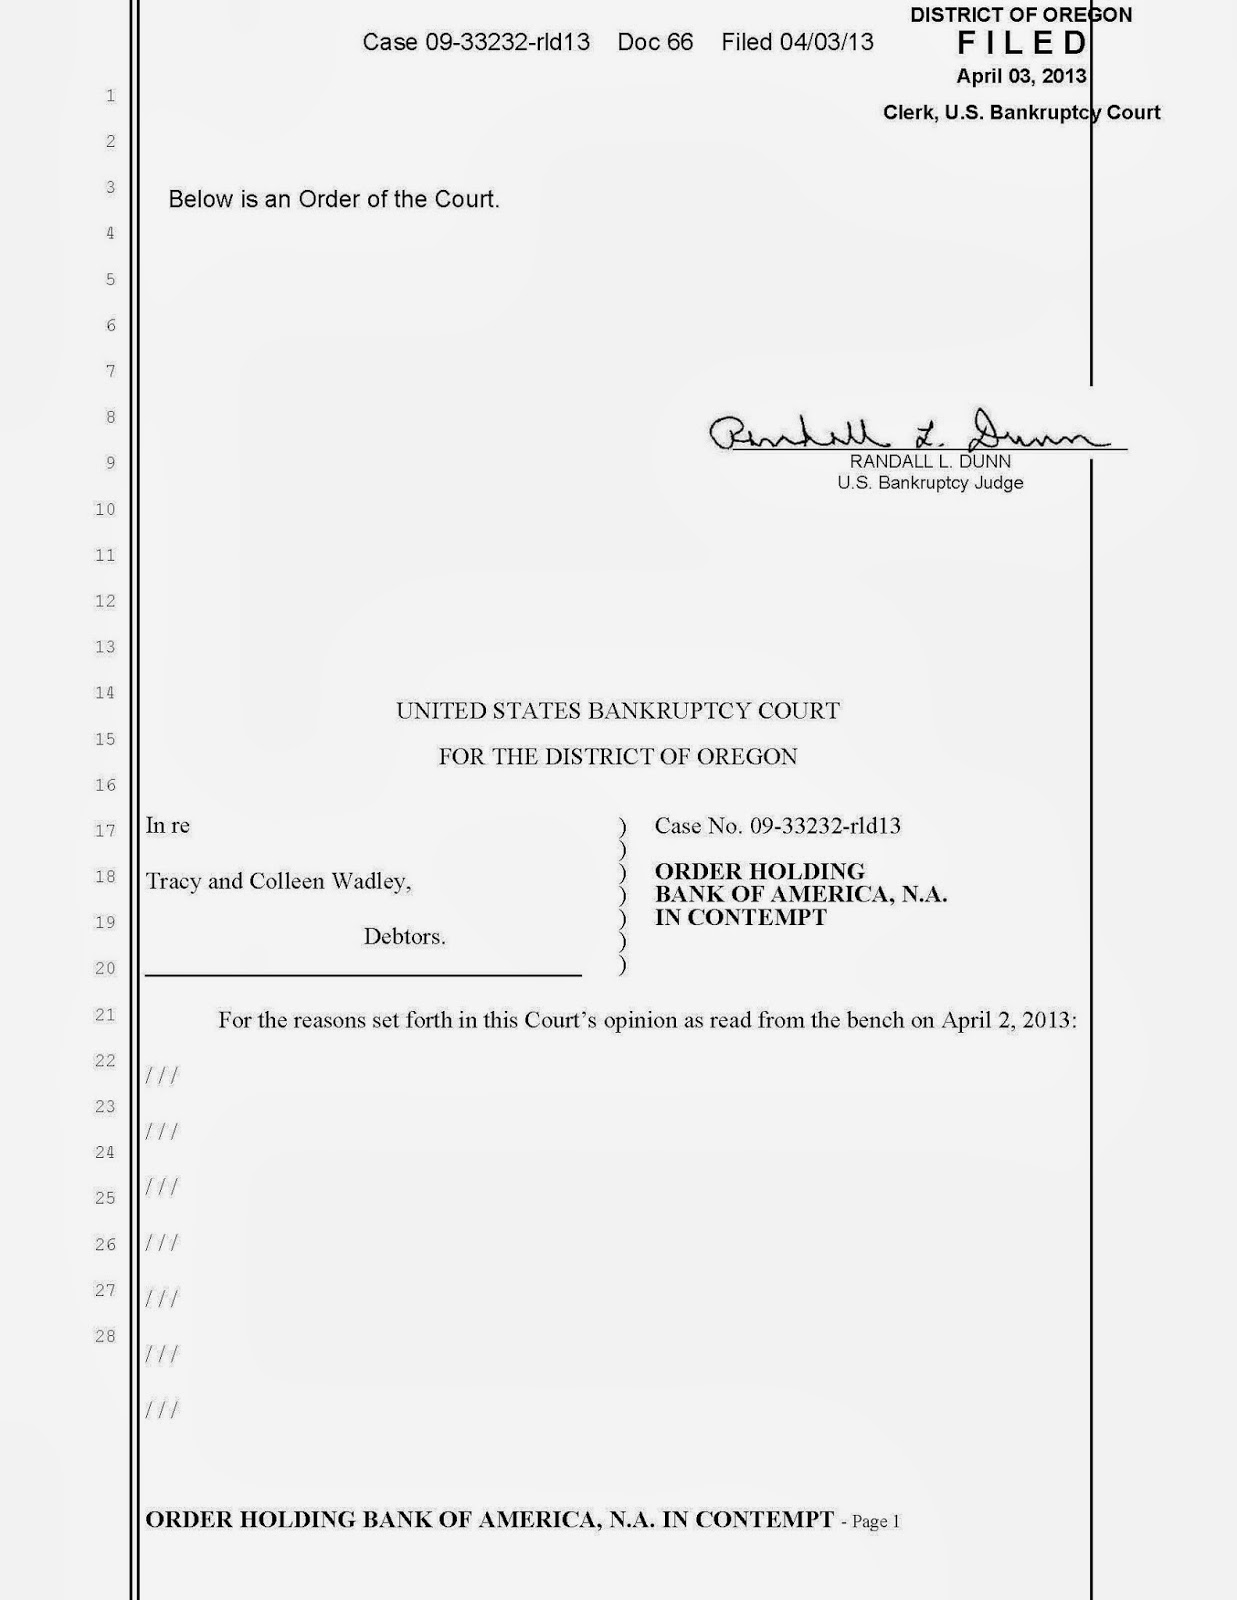 bankruptcy letter of explanation template - something interesting about copy of bankruptcy discharge